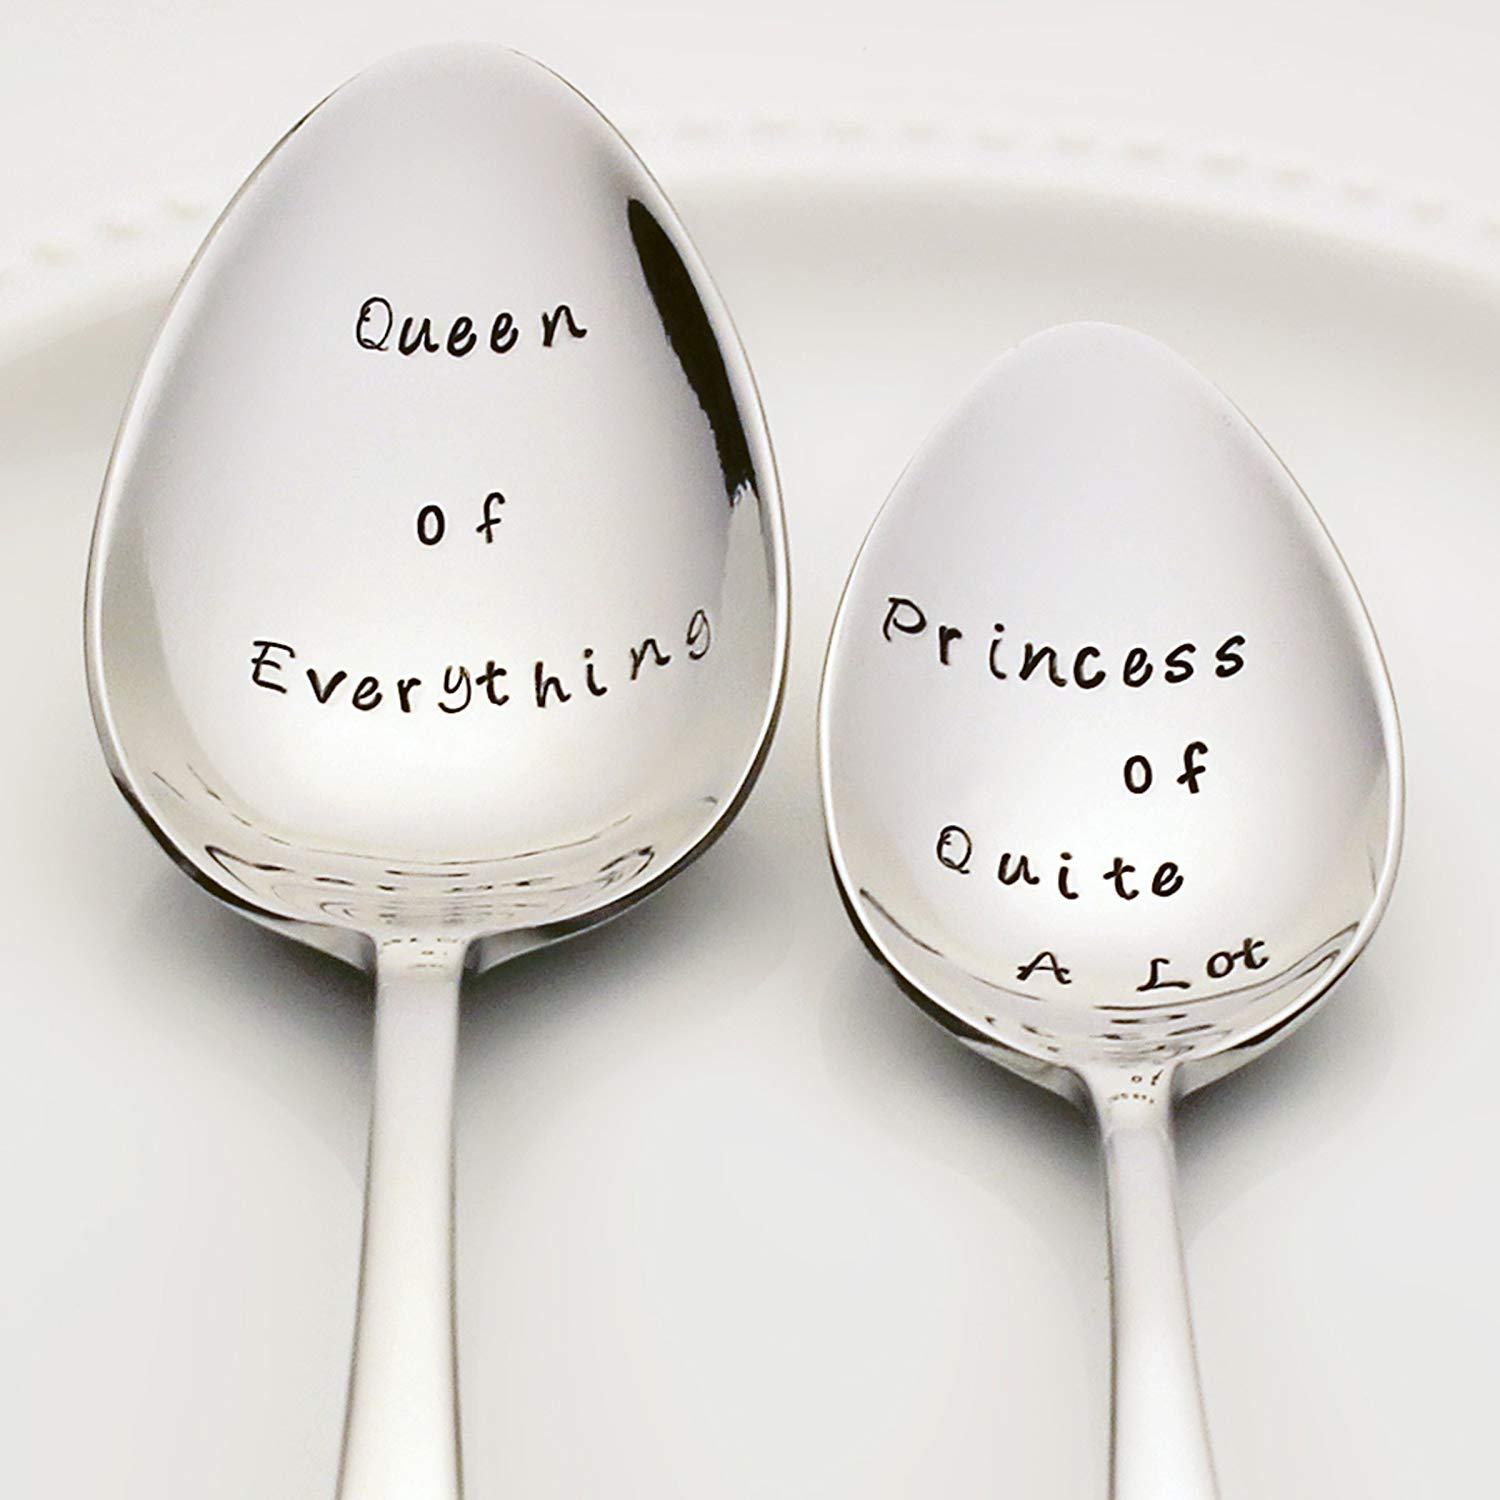 Queen of Everything / Princess of Quite A Lot - Stainless Steel Stamped Spoon Set of 2 | Stamped Silverware | Kitchen Gifts for Mom | Mother and Daughter Valentine Gift Set